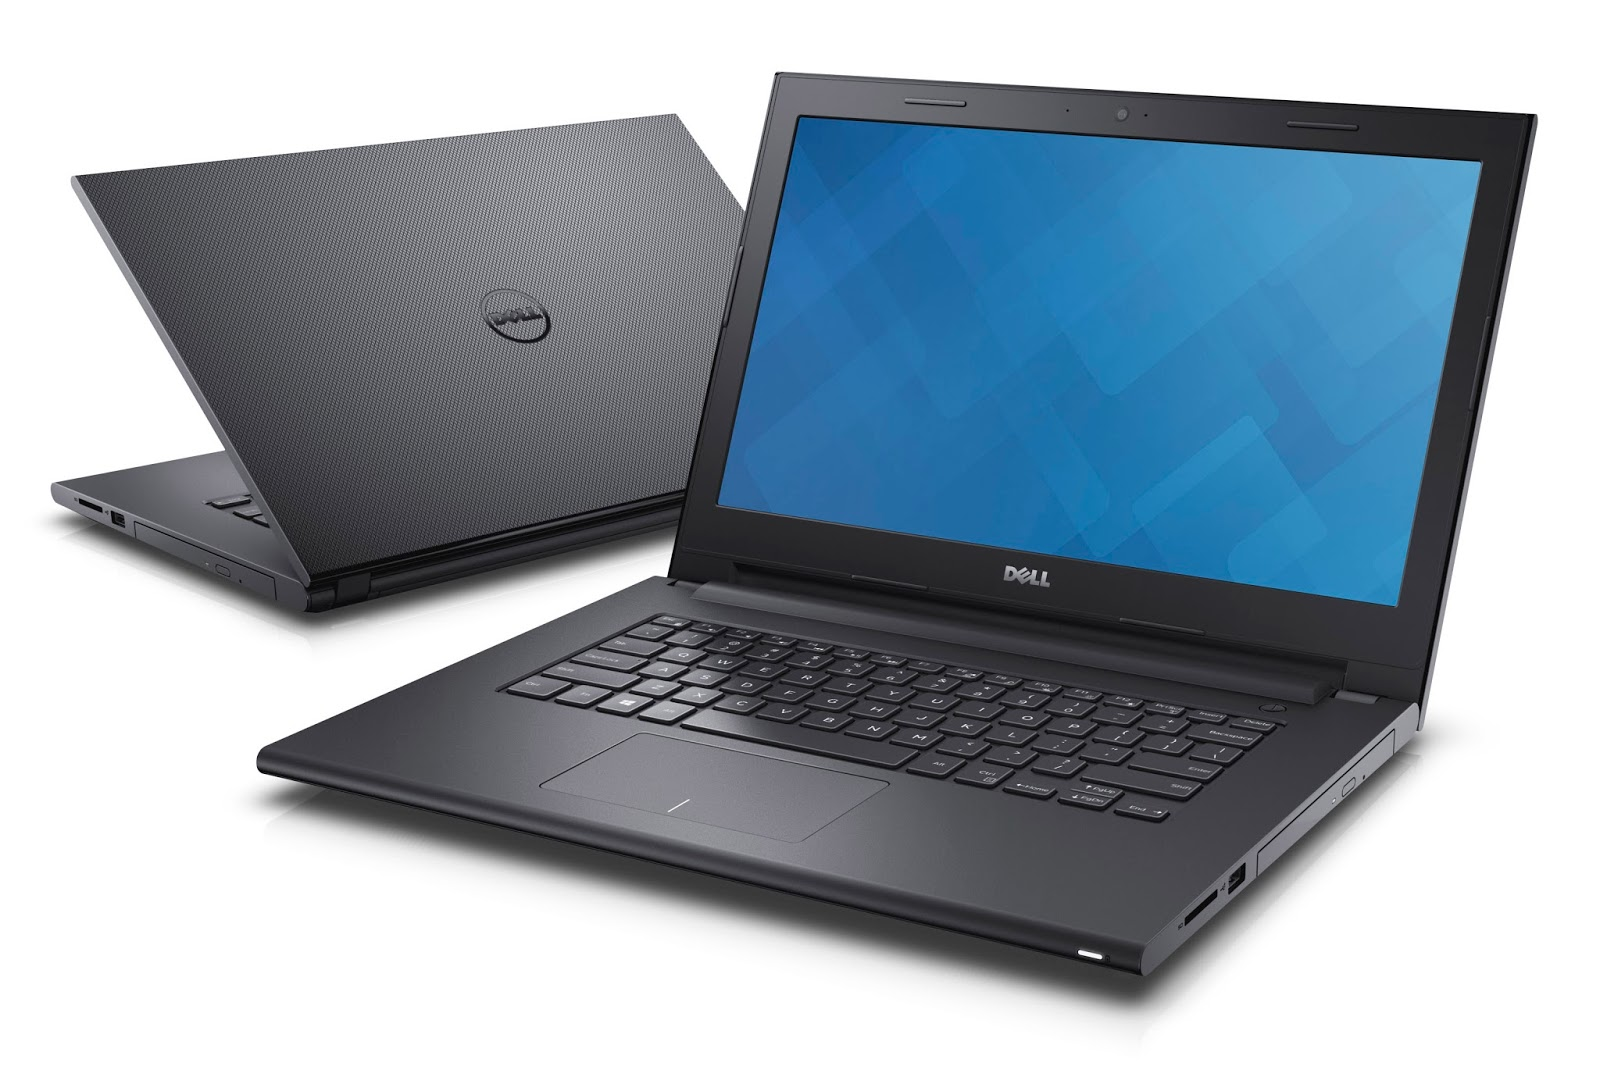 Dell Usb 3.0 Driver Download